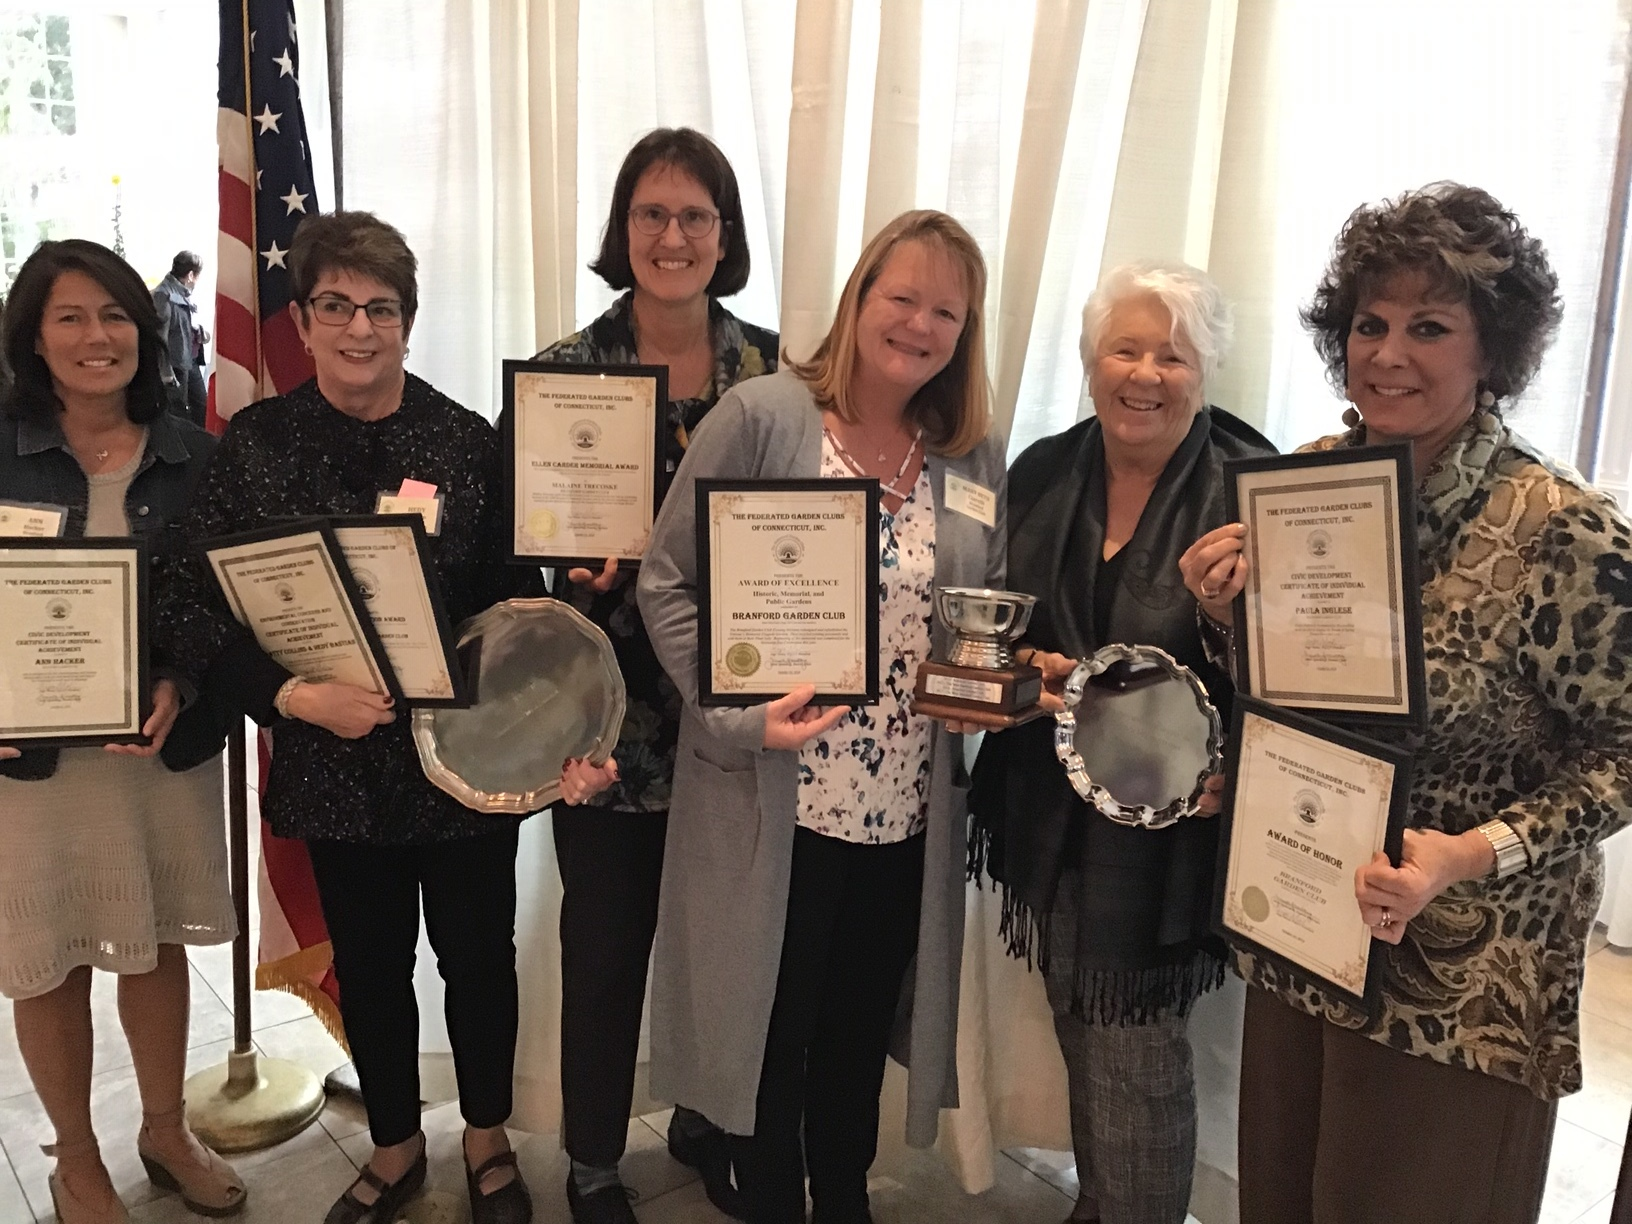 Federated Garden Club Annual Awards Recipients (l to r): Ann Hacker, Hedy Bastian, Malaine Trecoske, Marybeth Ciarlelli, Linda Holmes, Paula Inglese